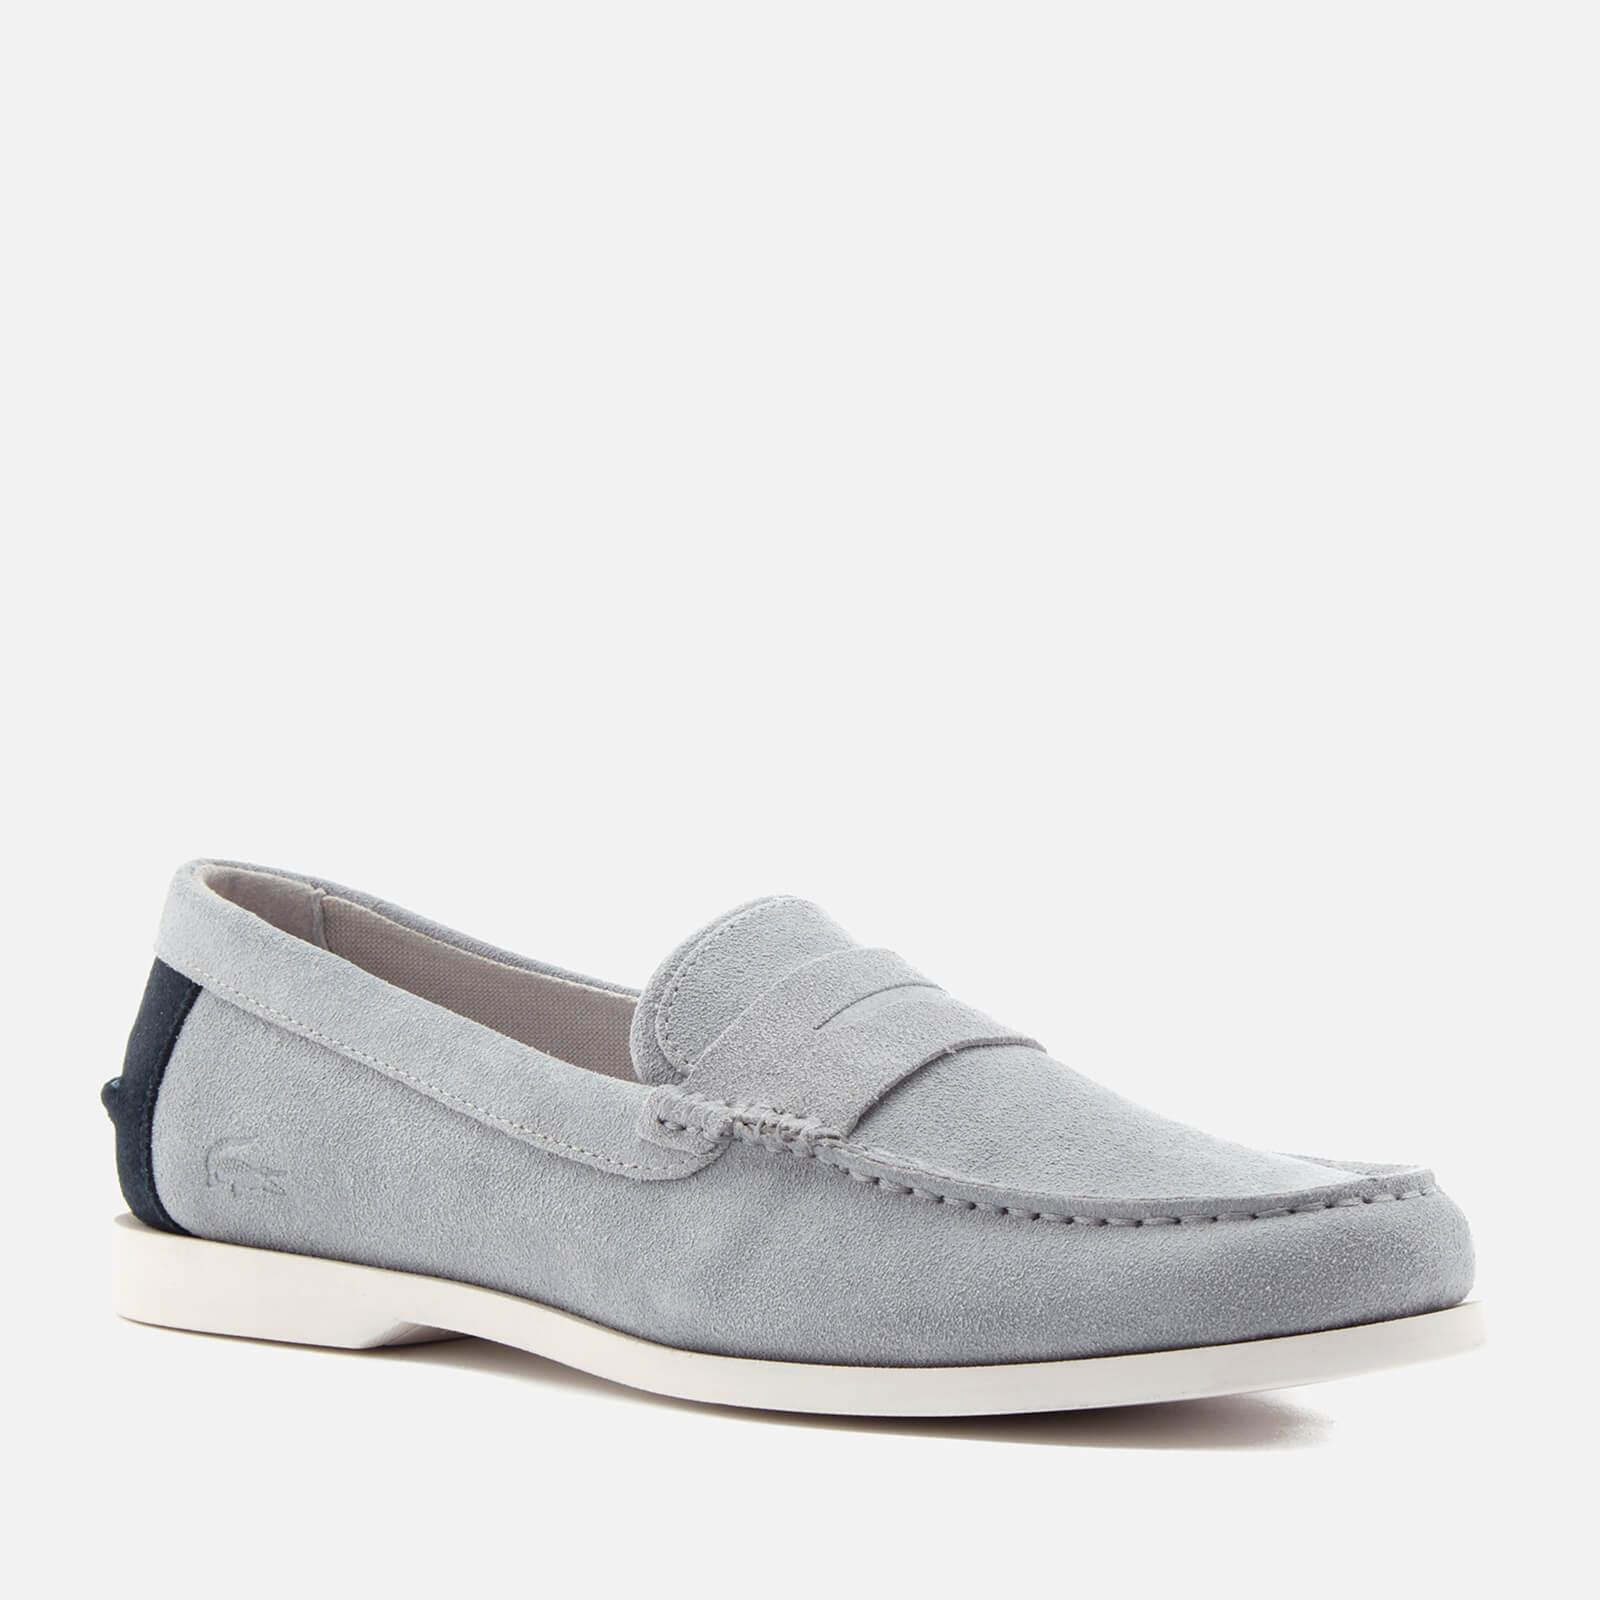 Lacoste Men's Navire Penny 216 Suede Loafers - - UK 10